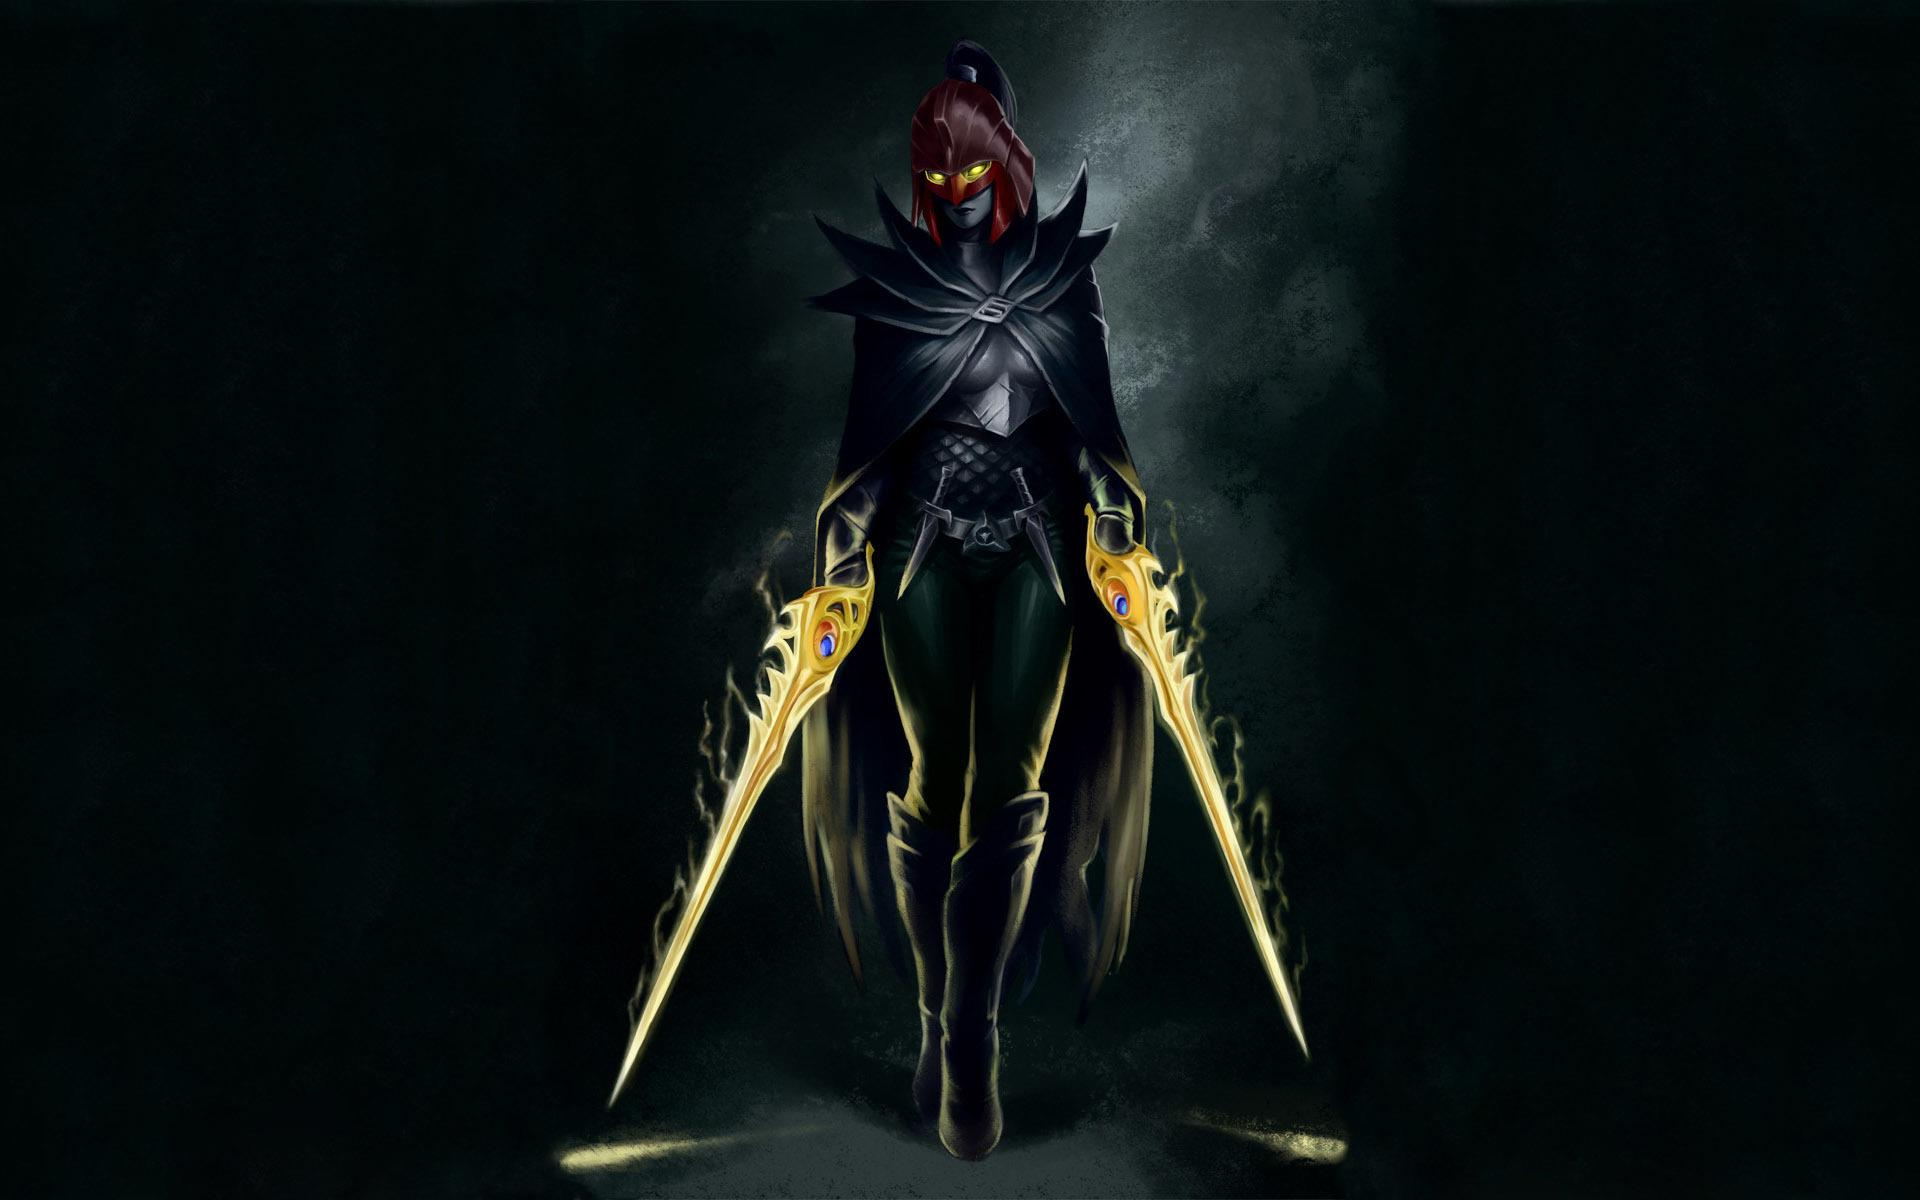 Best Dota Wallpaper Drow Ranger The Shadow of Ice Drow